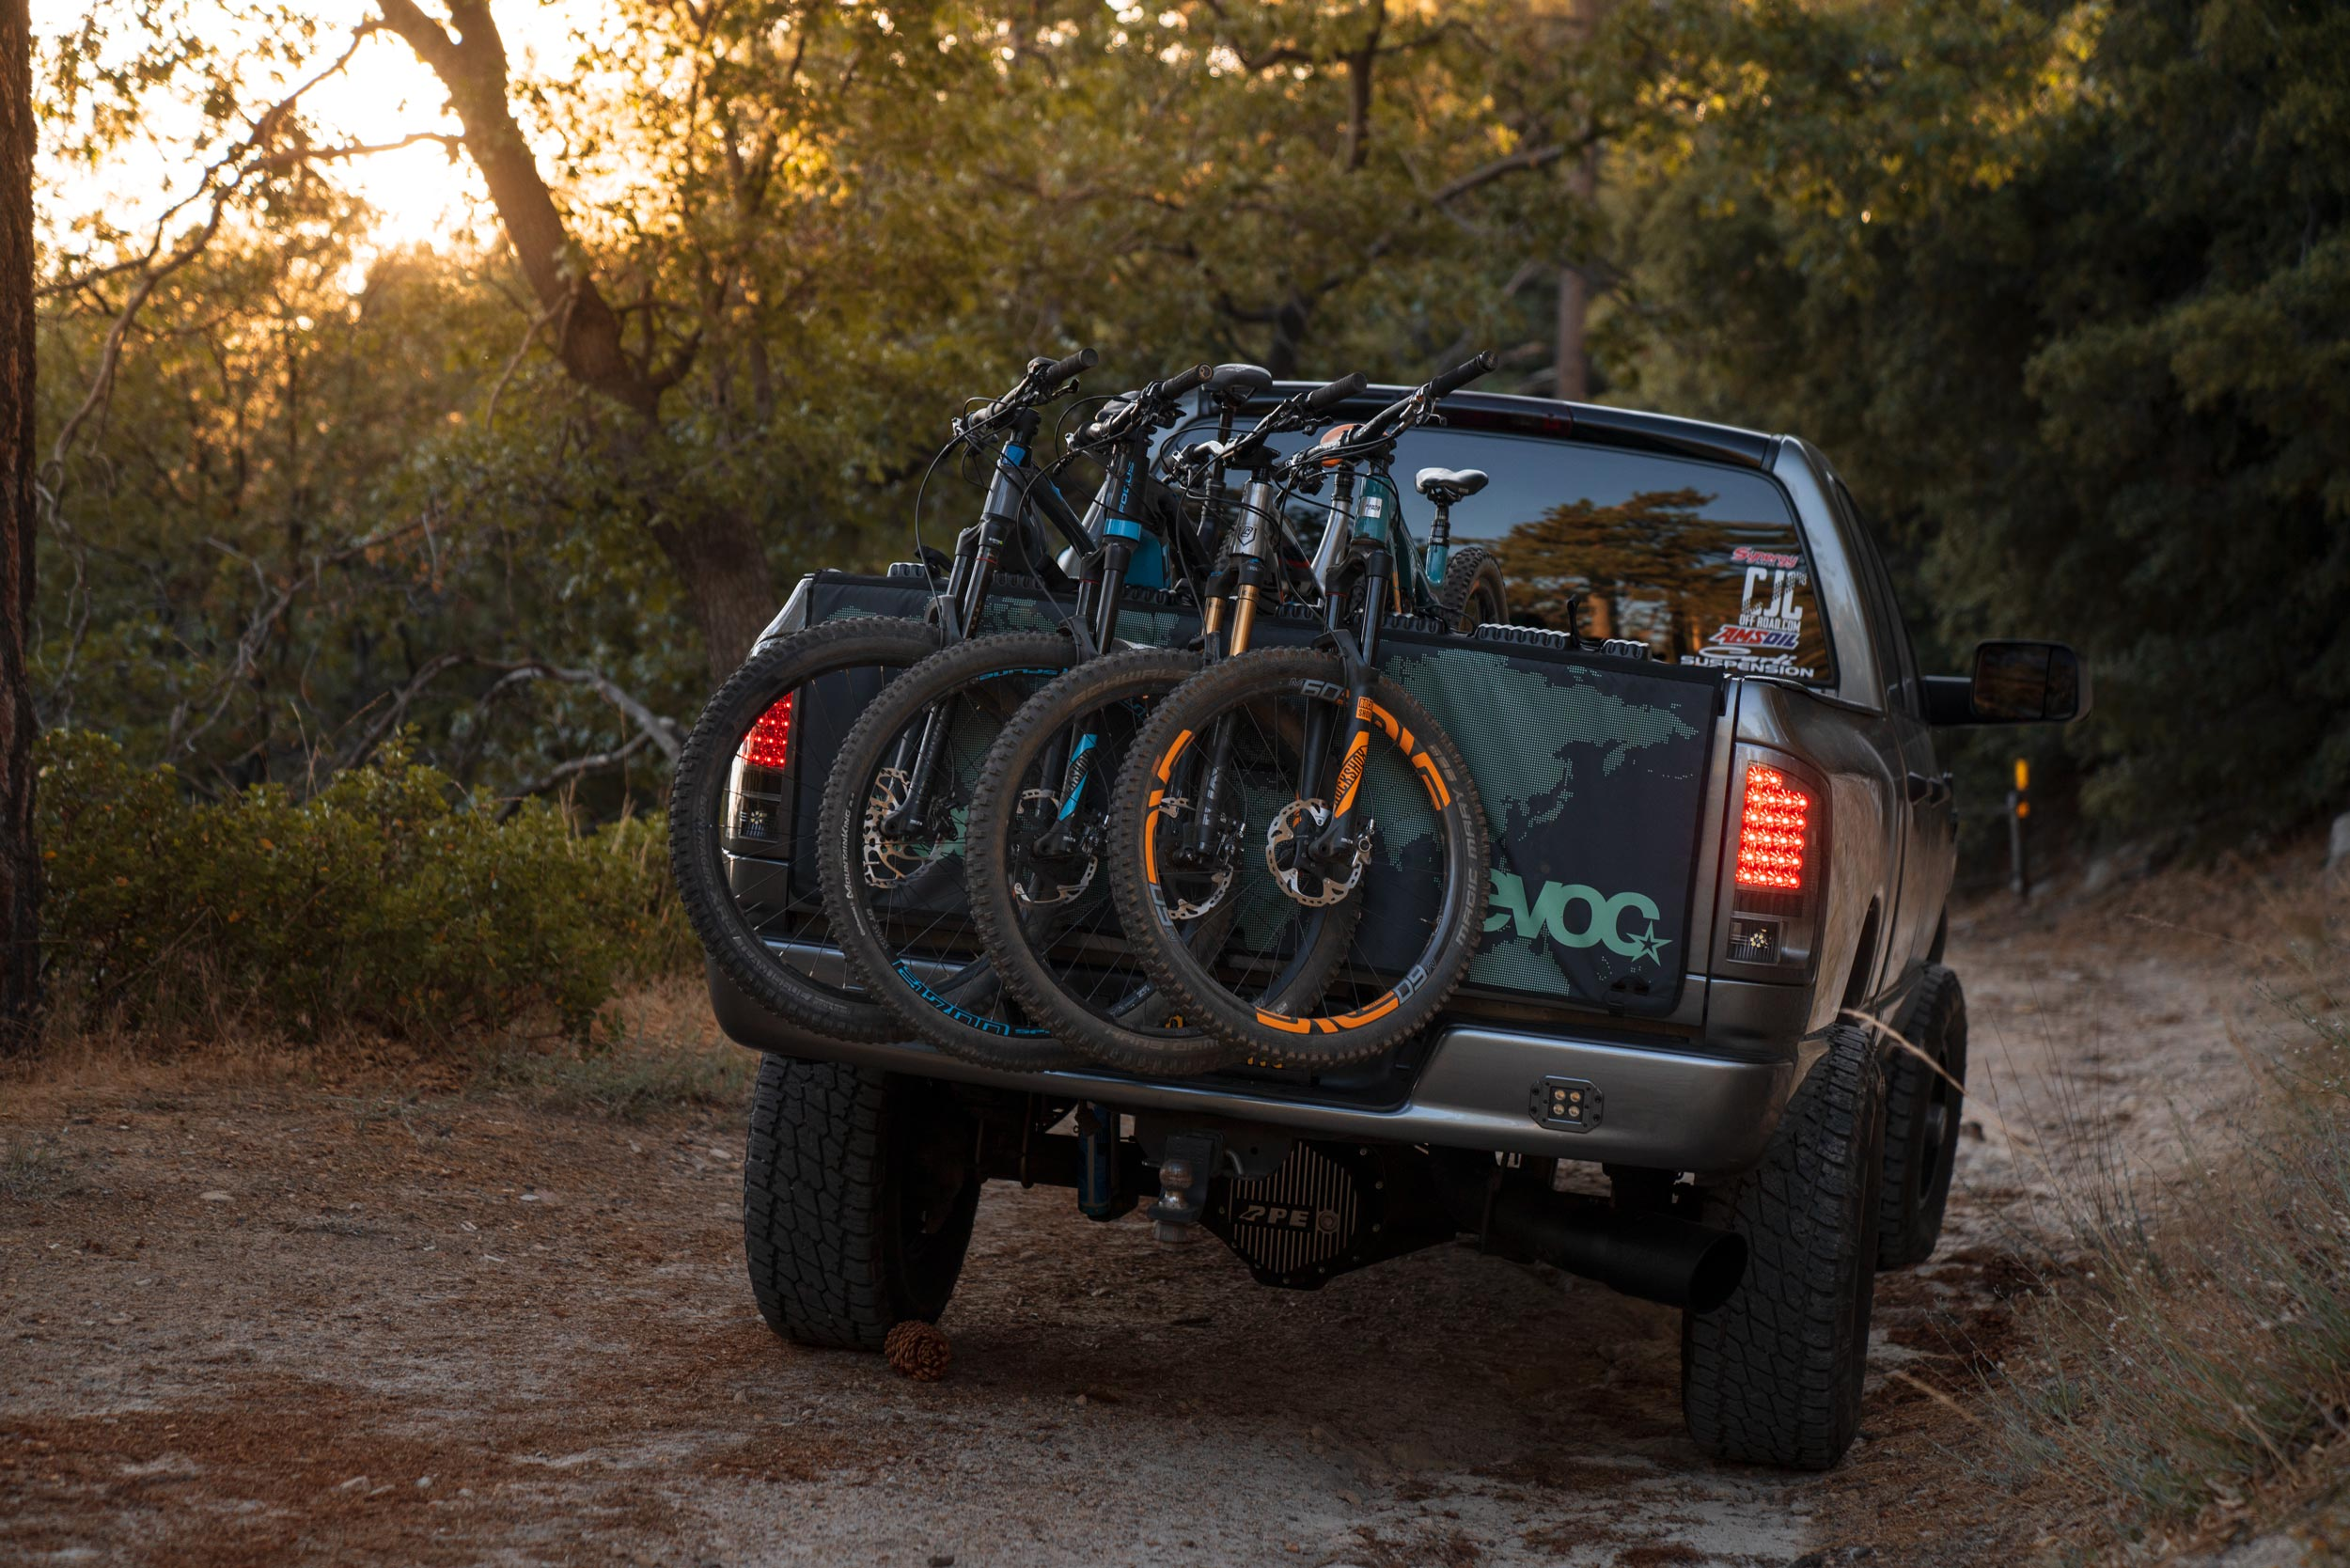 Evoc Tailgate Pad Review The Best Way To Shuttle Bikes